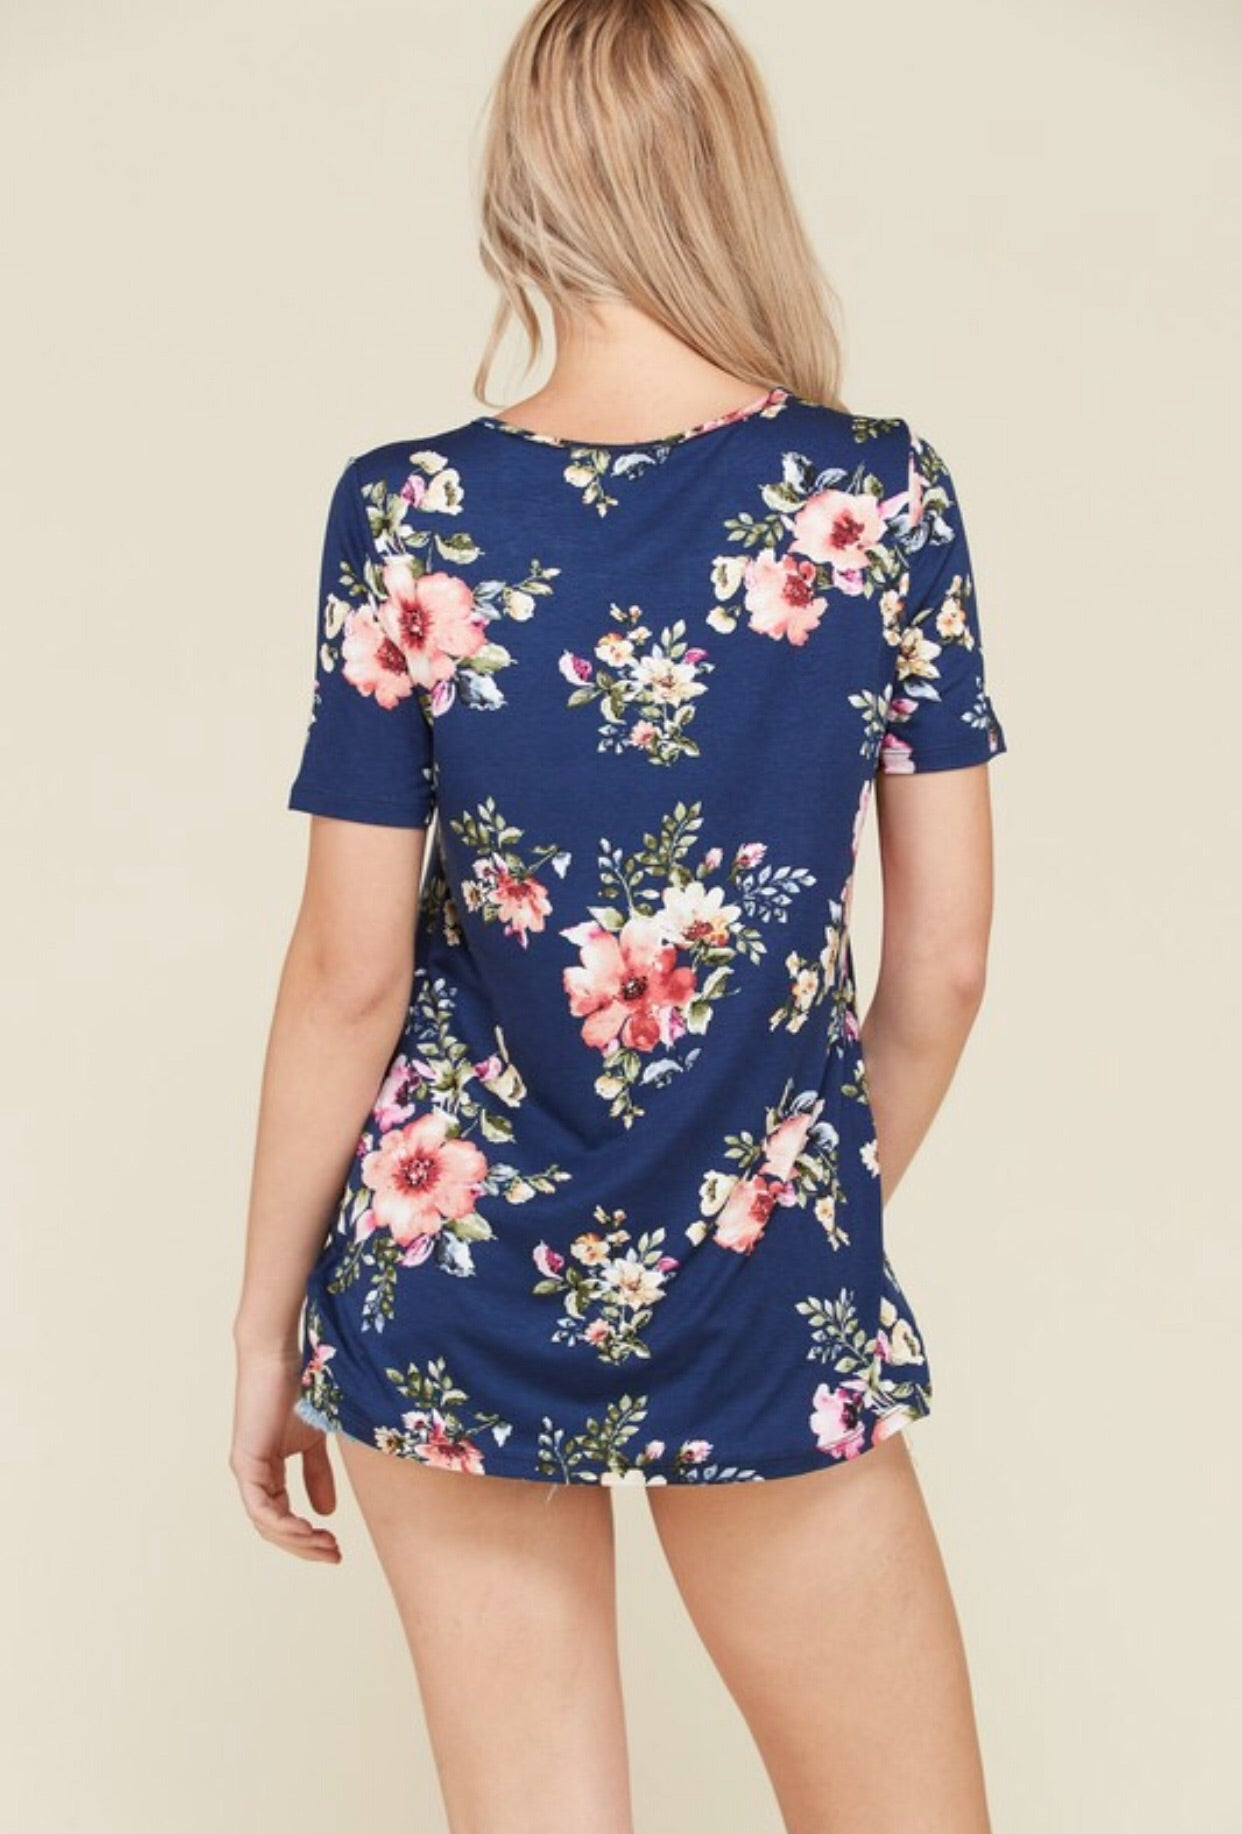 KNOTTED FLORAL SHORT SLEEVE TOP